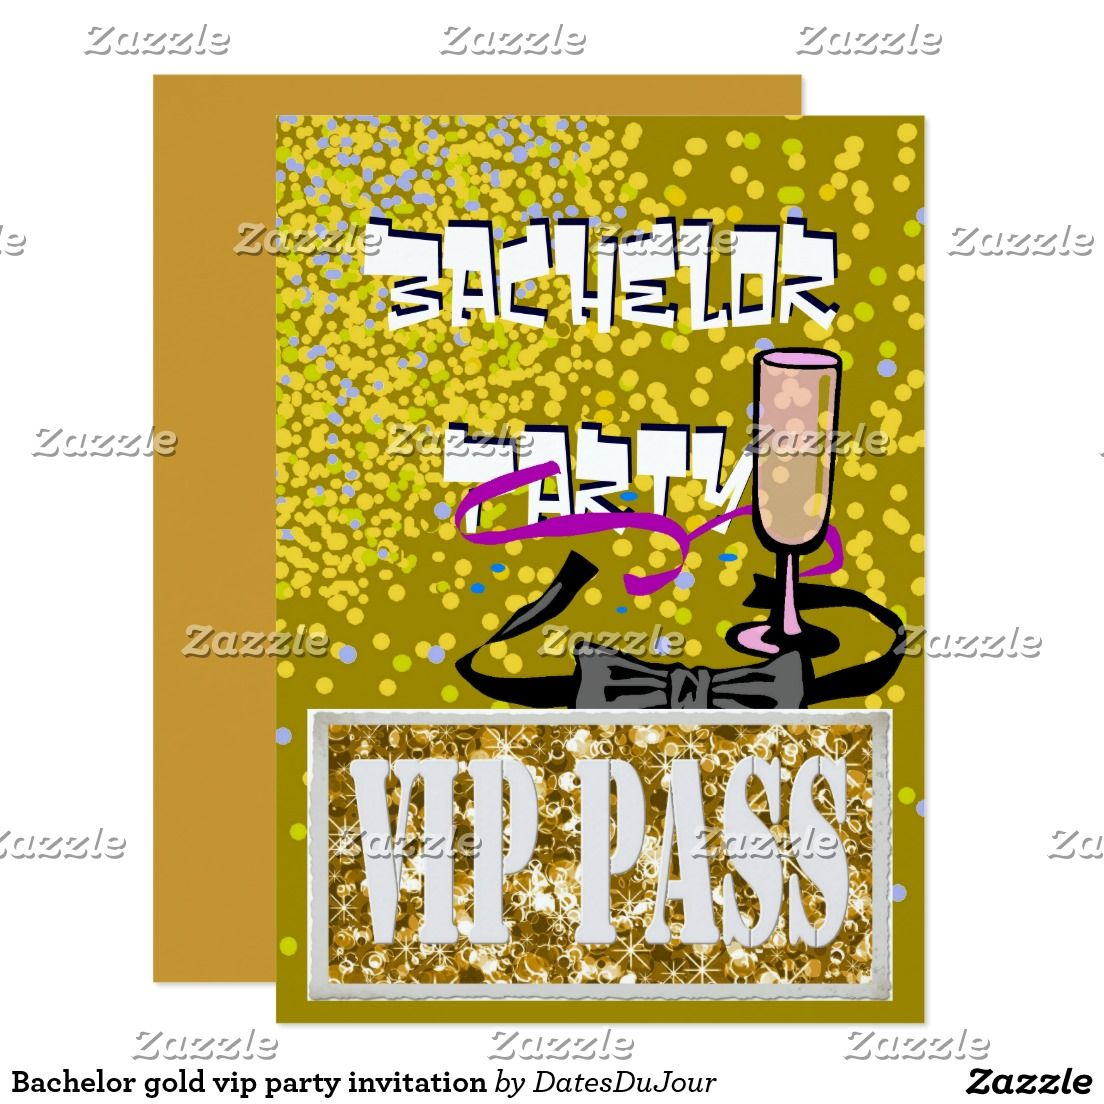 Bachelor gold vip party invitation | Pinterest | Party invitations ...